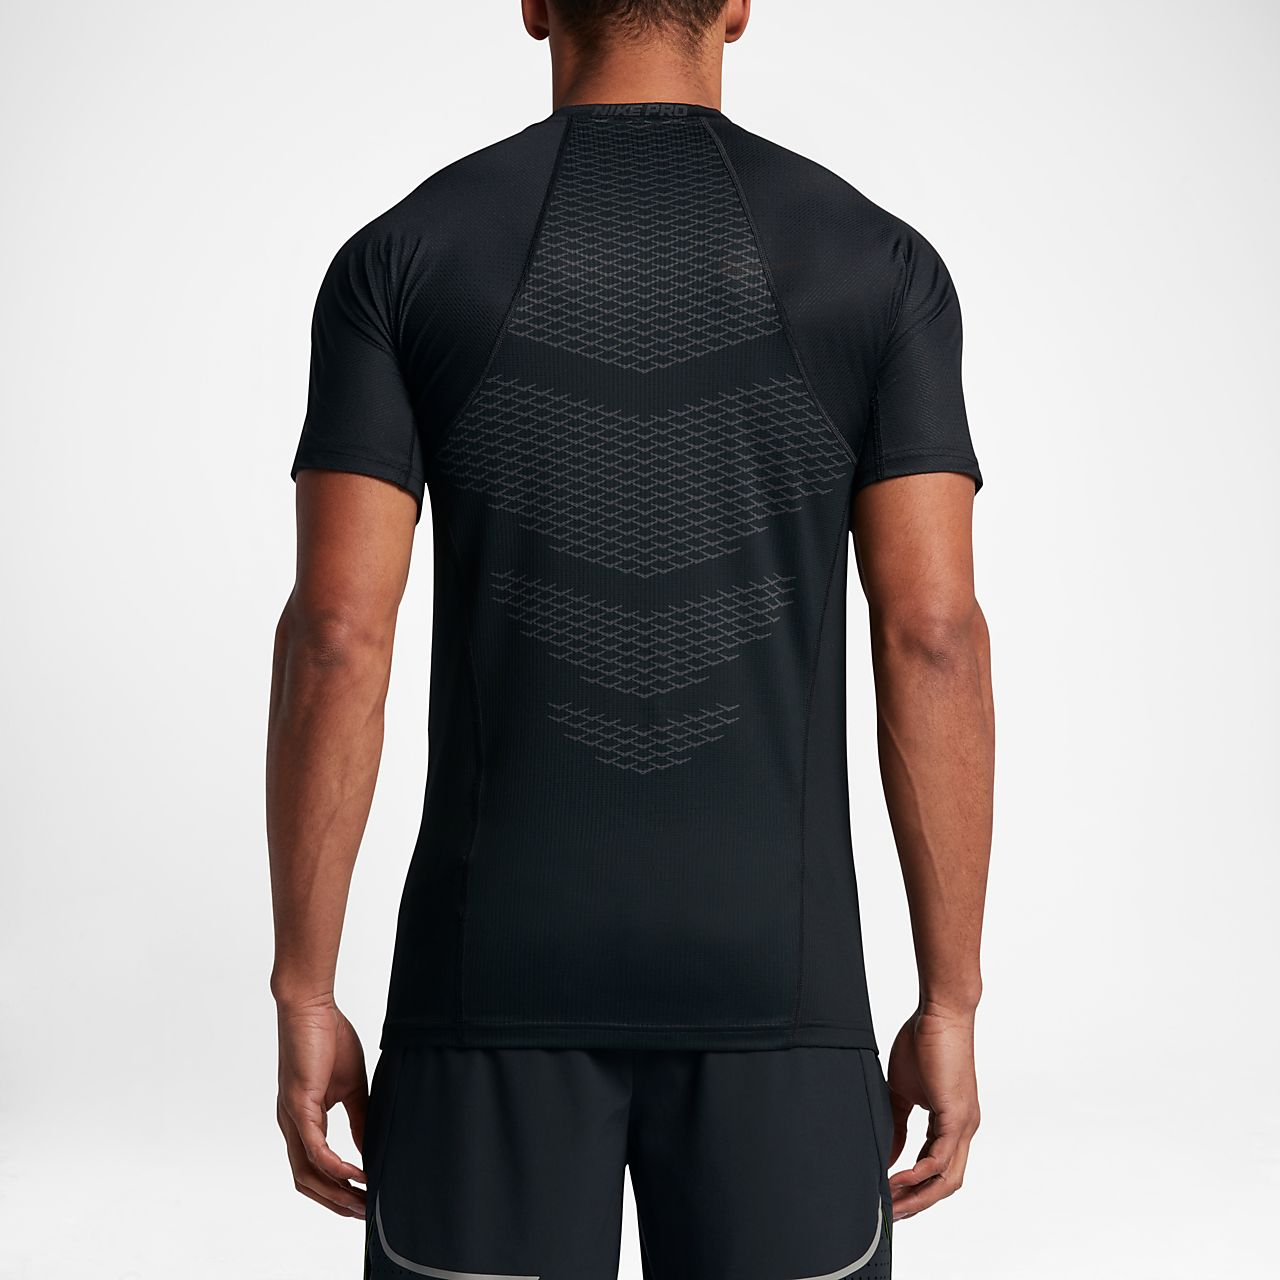 38701693d8479 Nike Pro HyperCool Men s Short-Sleeve Top. Nike.com AU